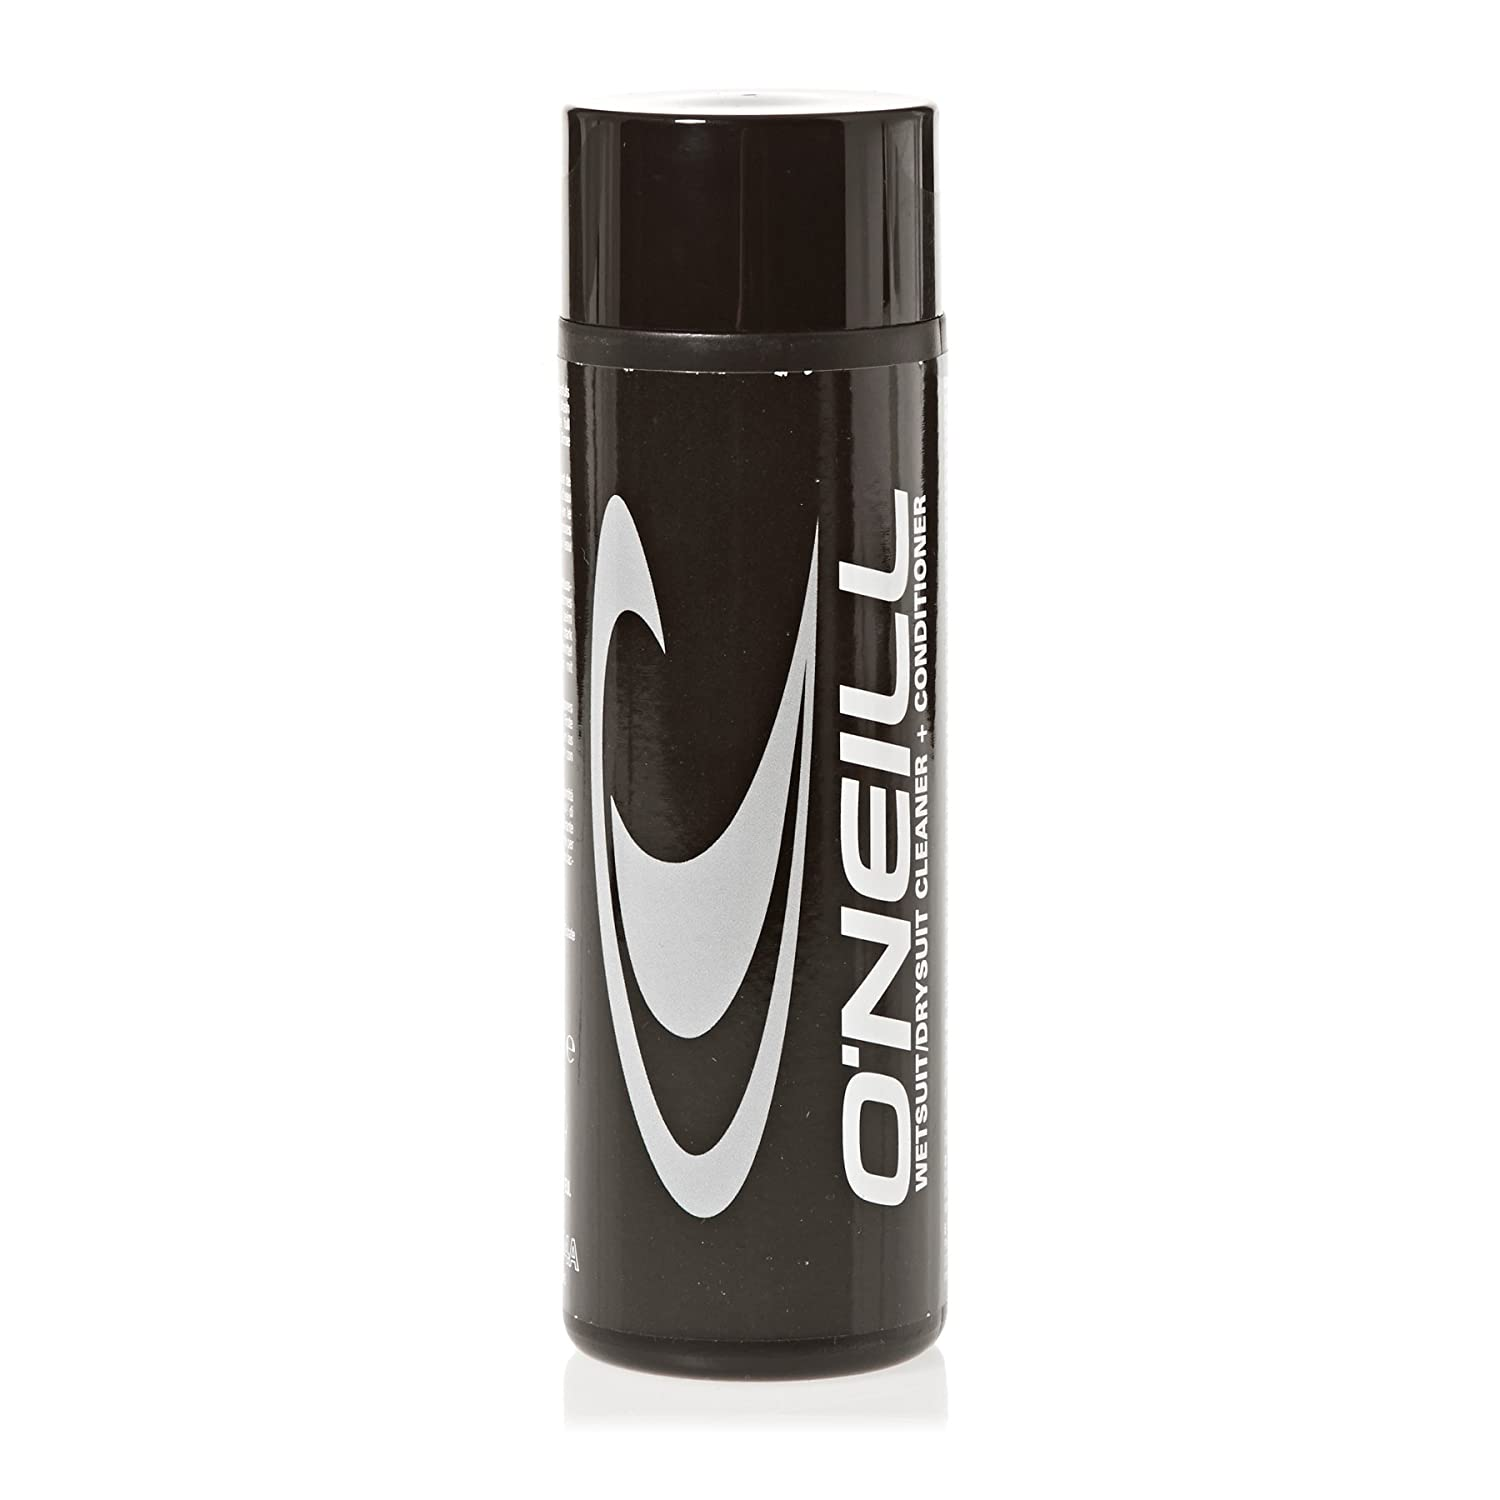 2017 O'Neill Wetsuit Cleaner / Conditioner 0144 ONeill